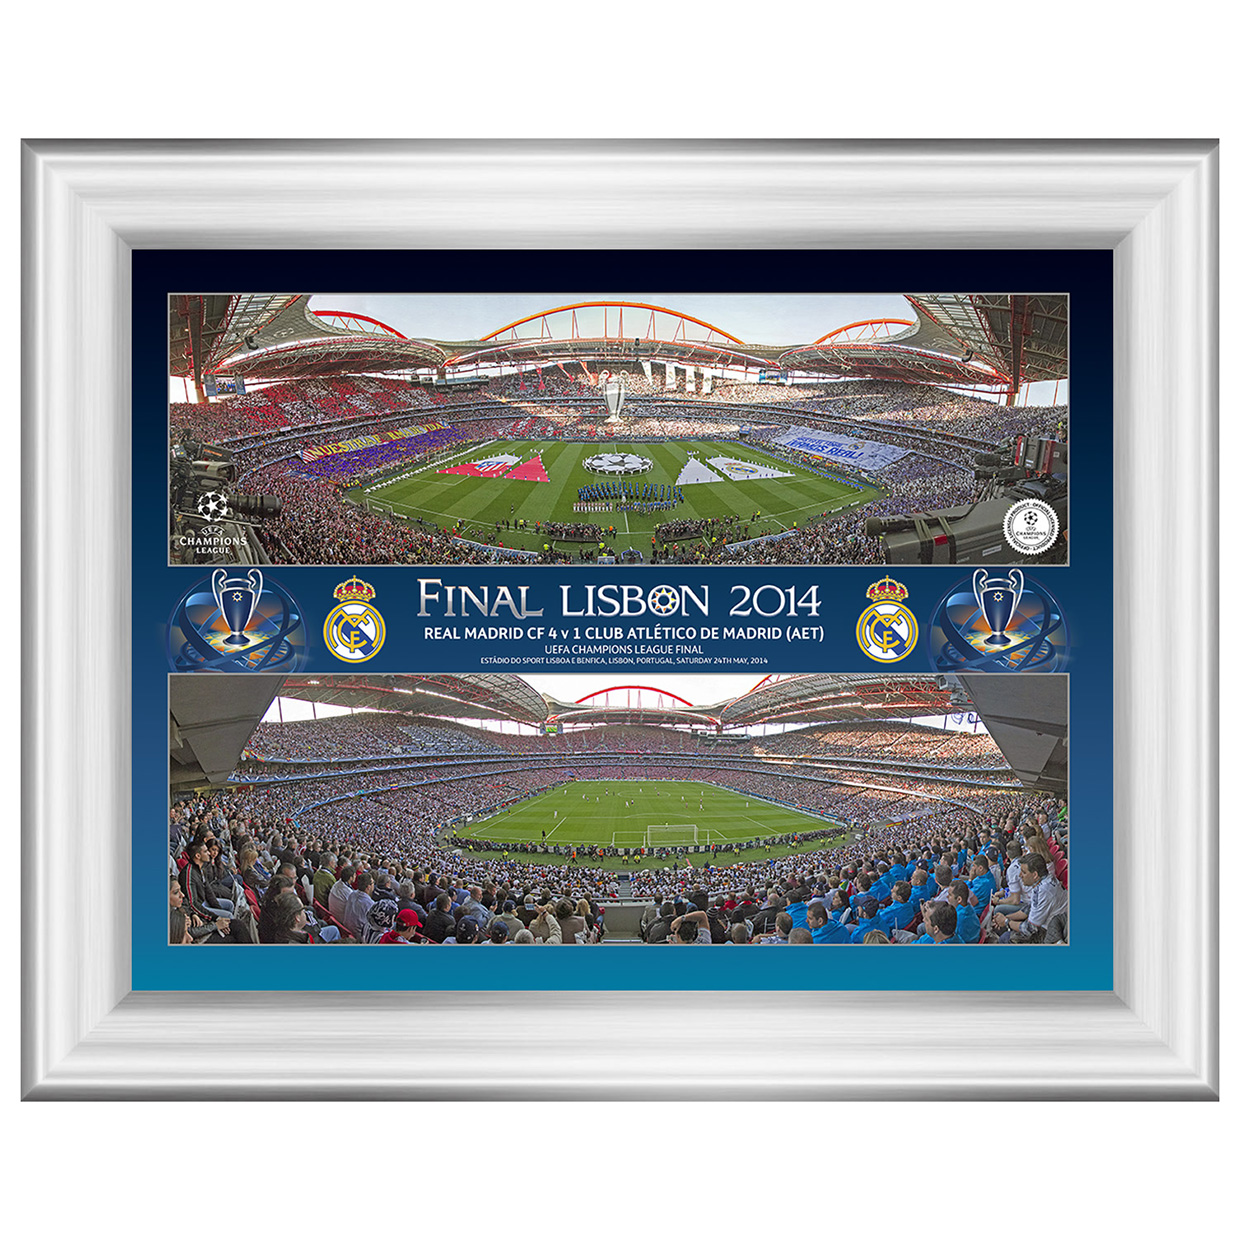 Real Madrid Champions League Final 2014 Line Up Panoramic Montage Desktop Print - 8 x 6 Inch